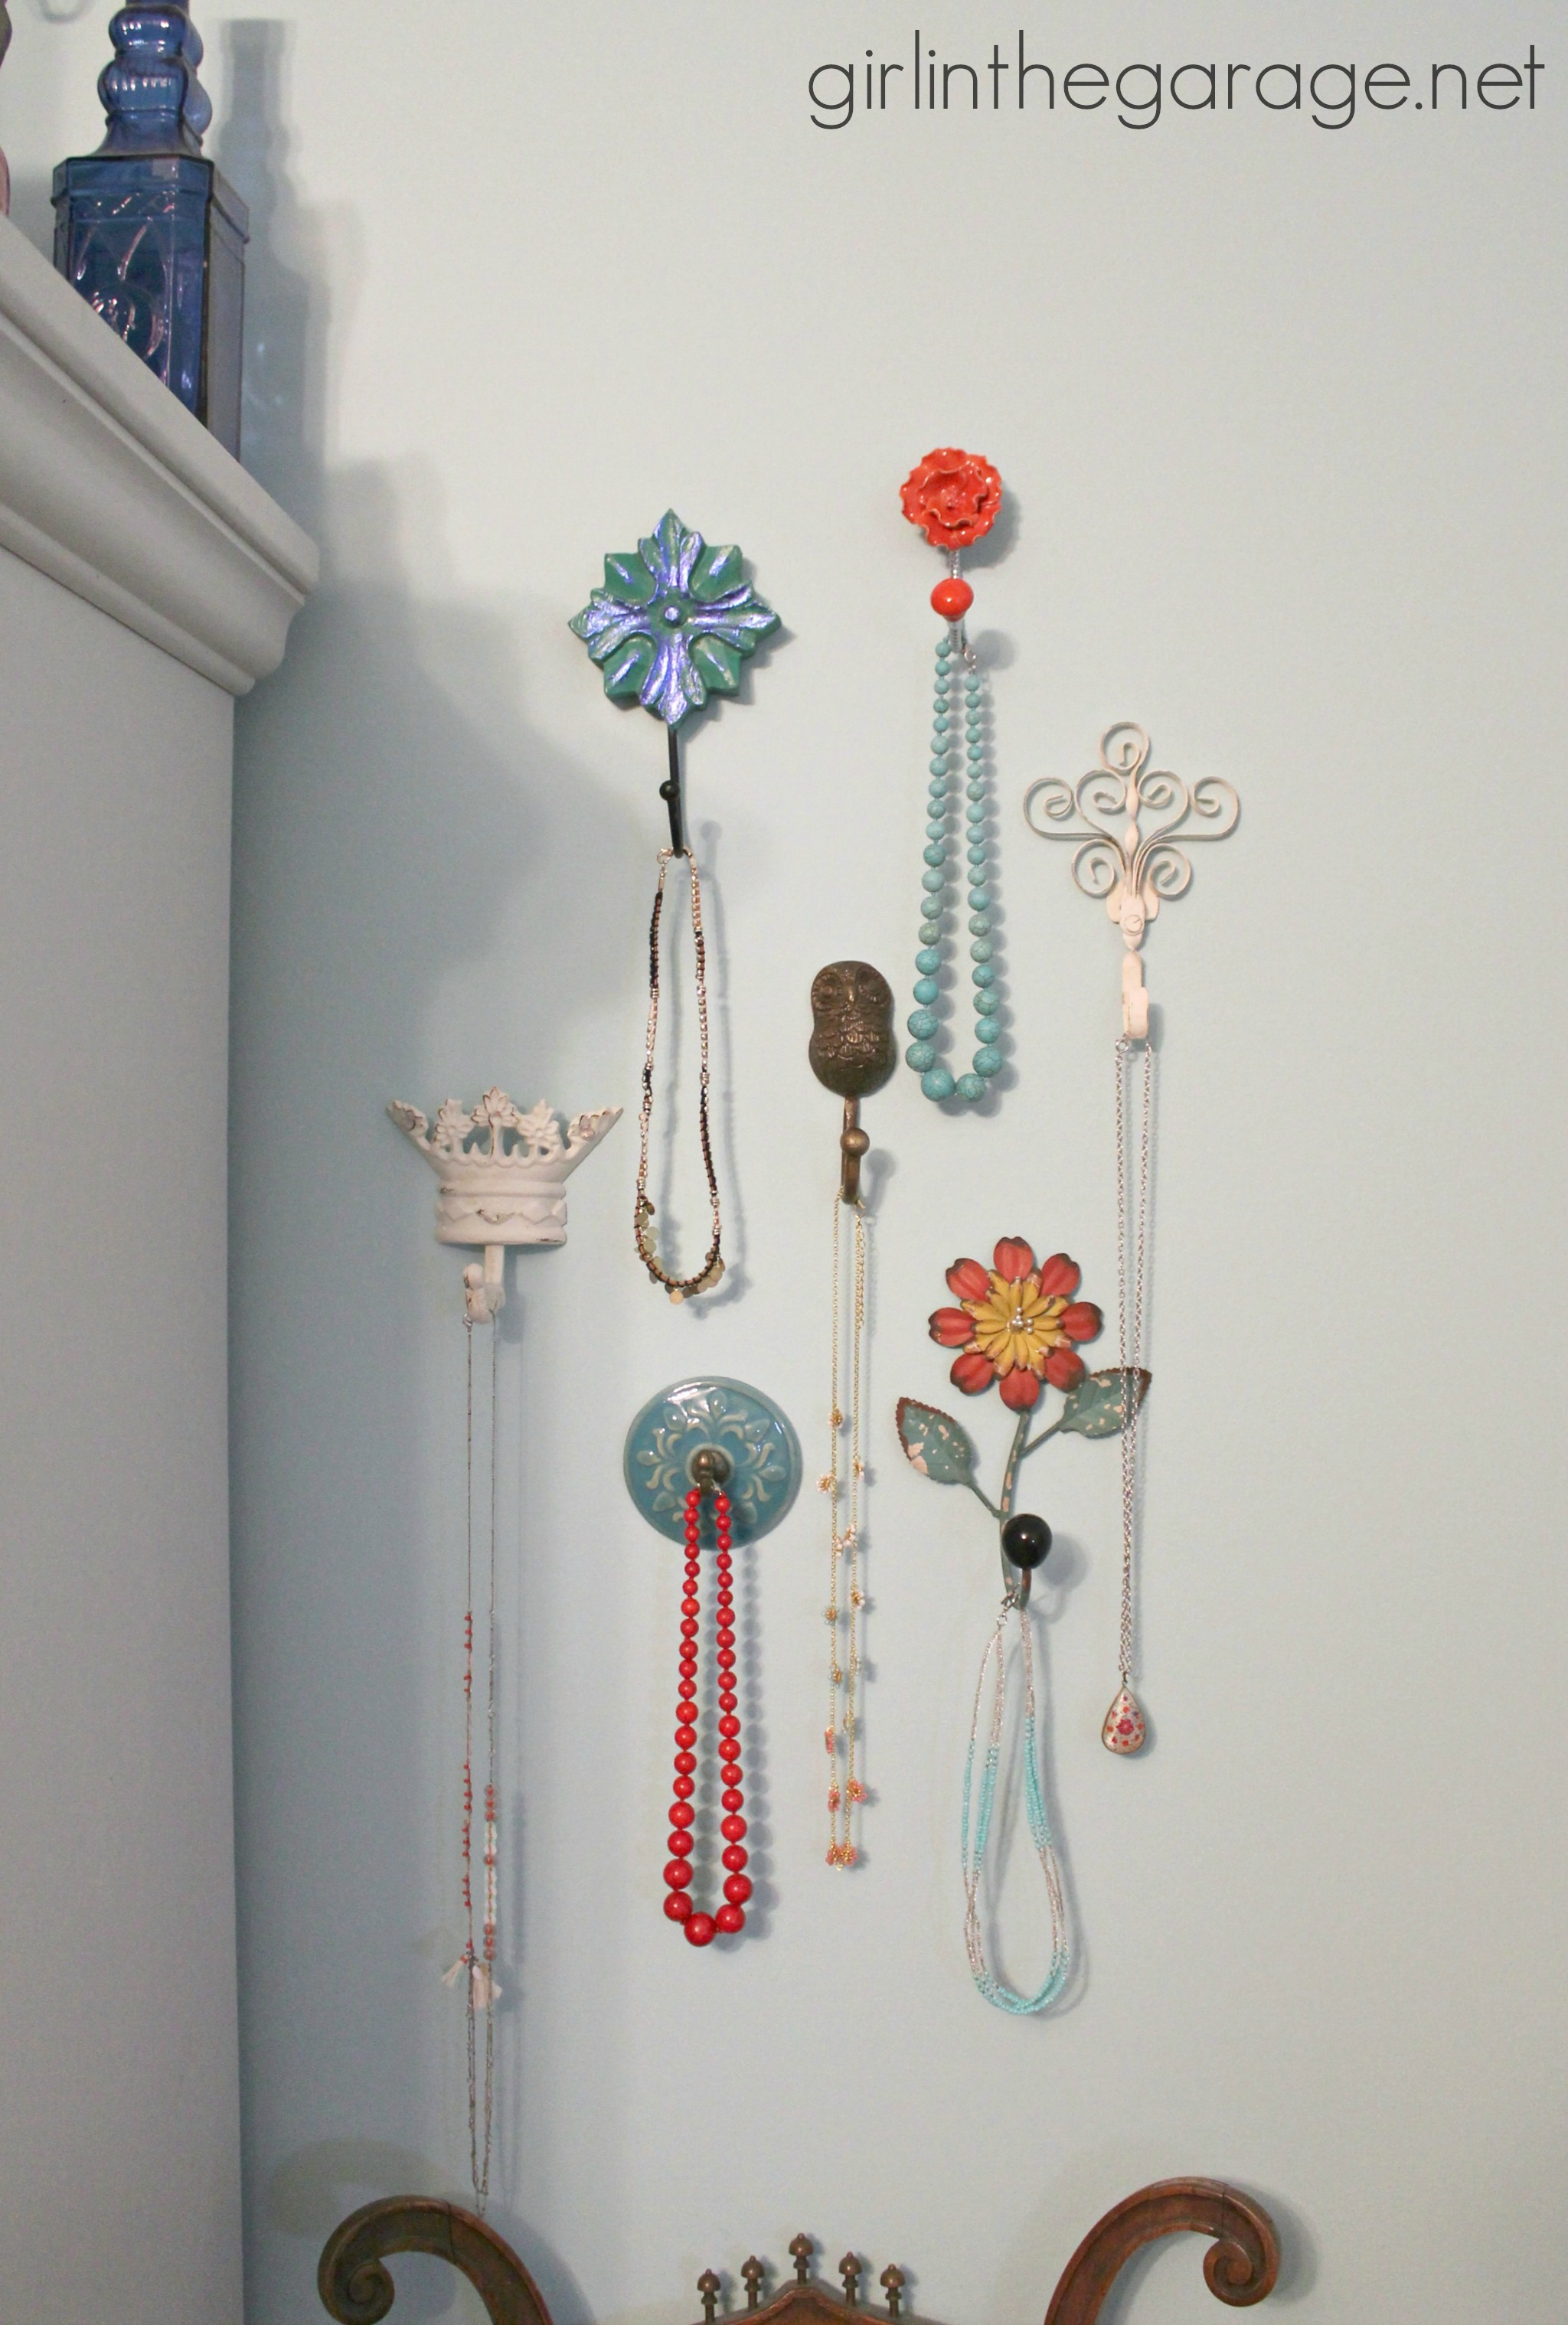 Decorative Wall Hooks As Jewelry Storage Girl In The Garage